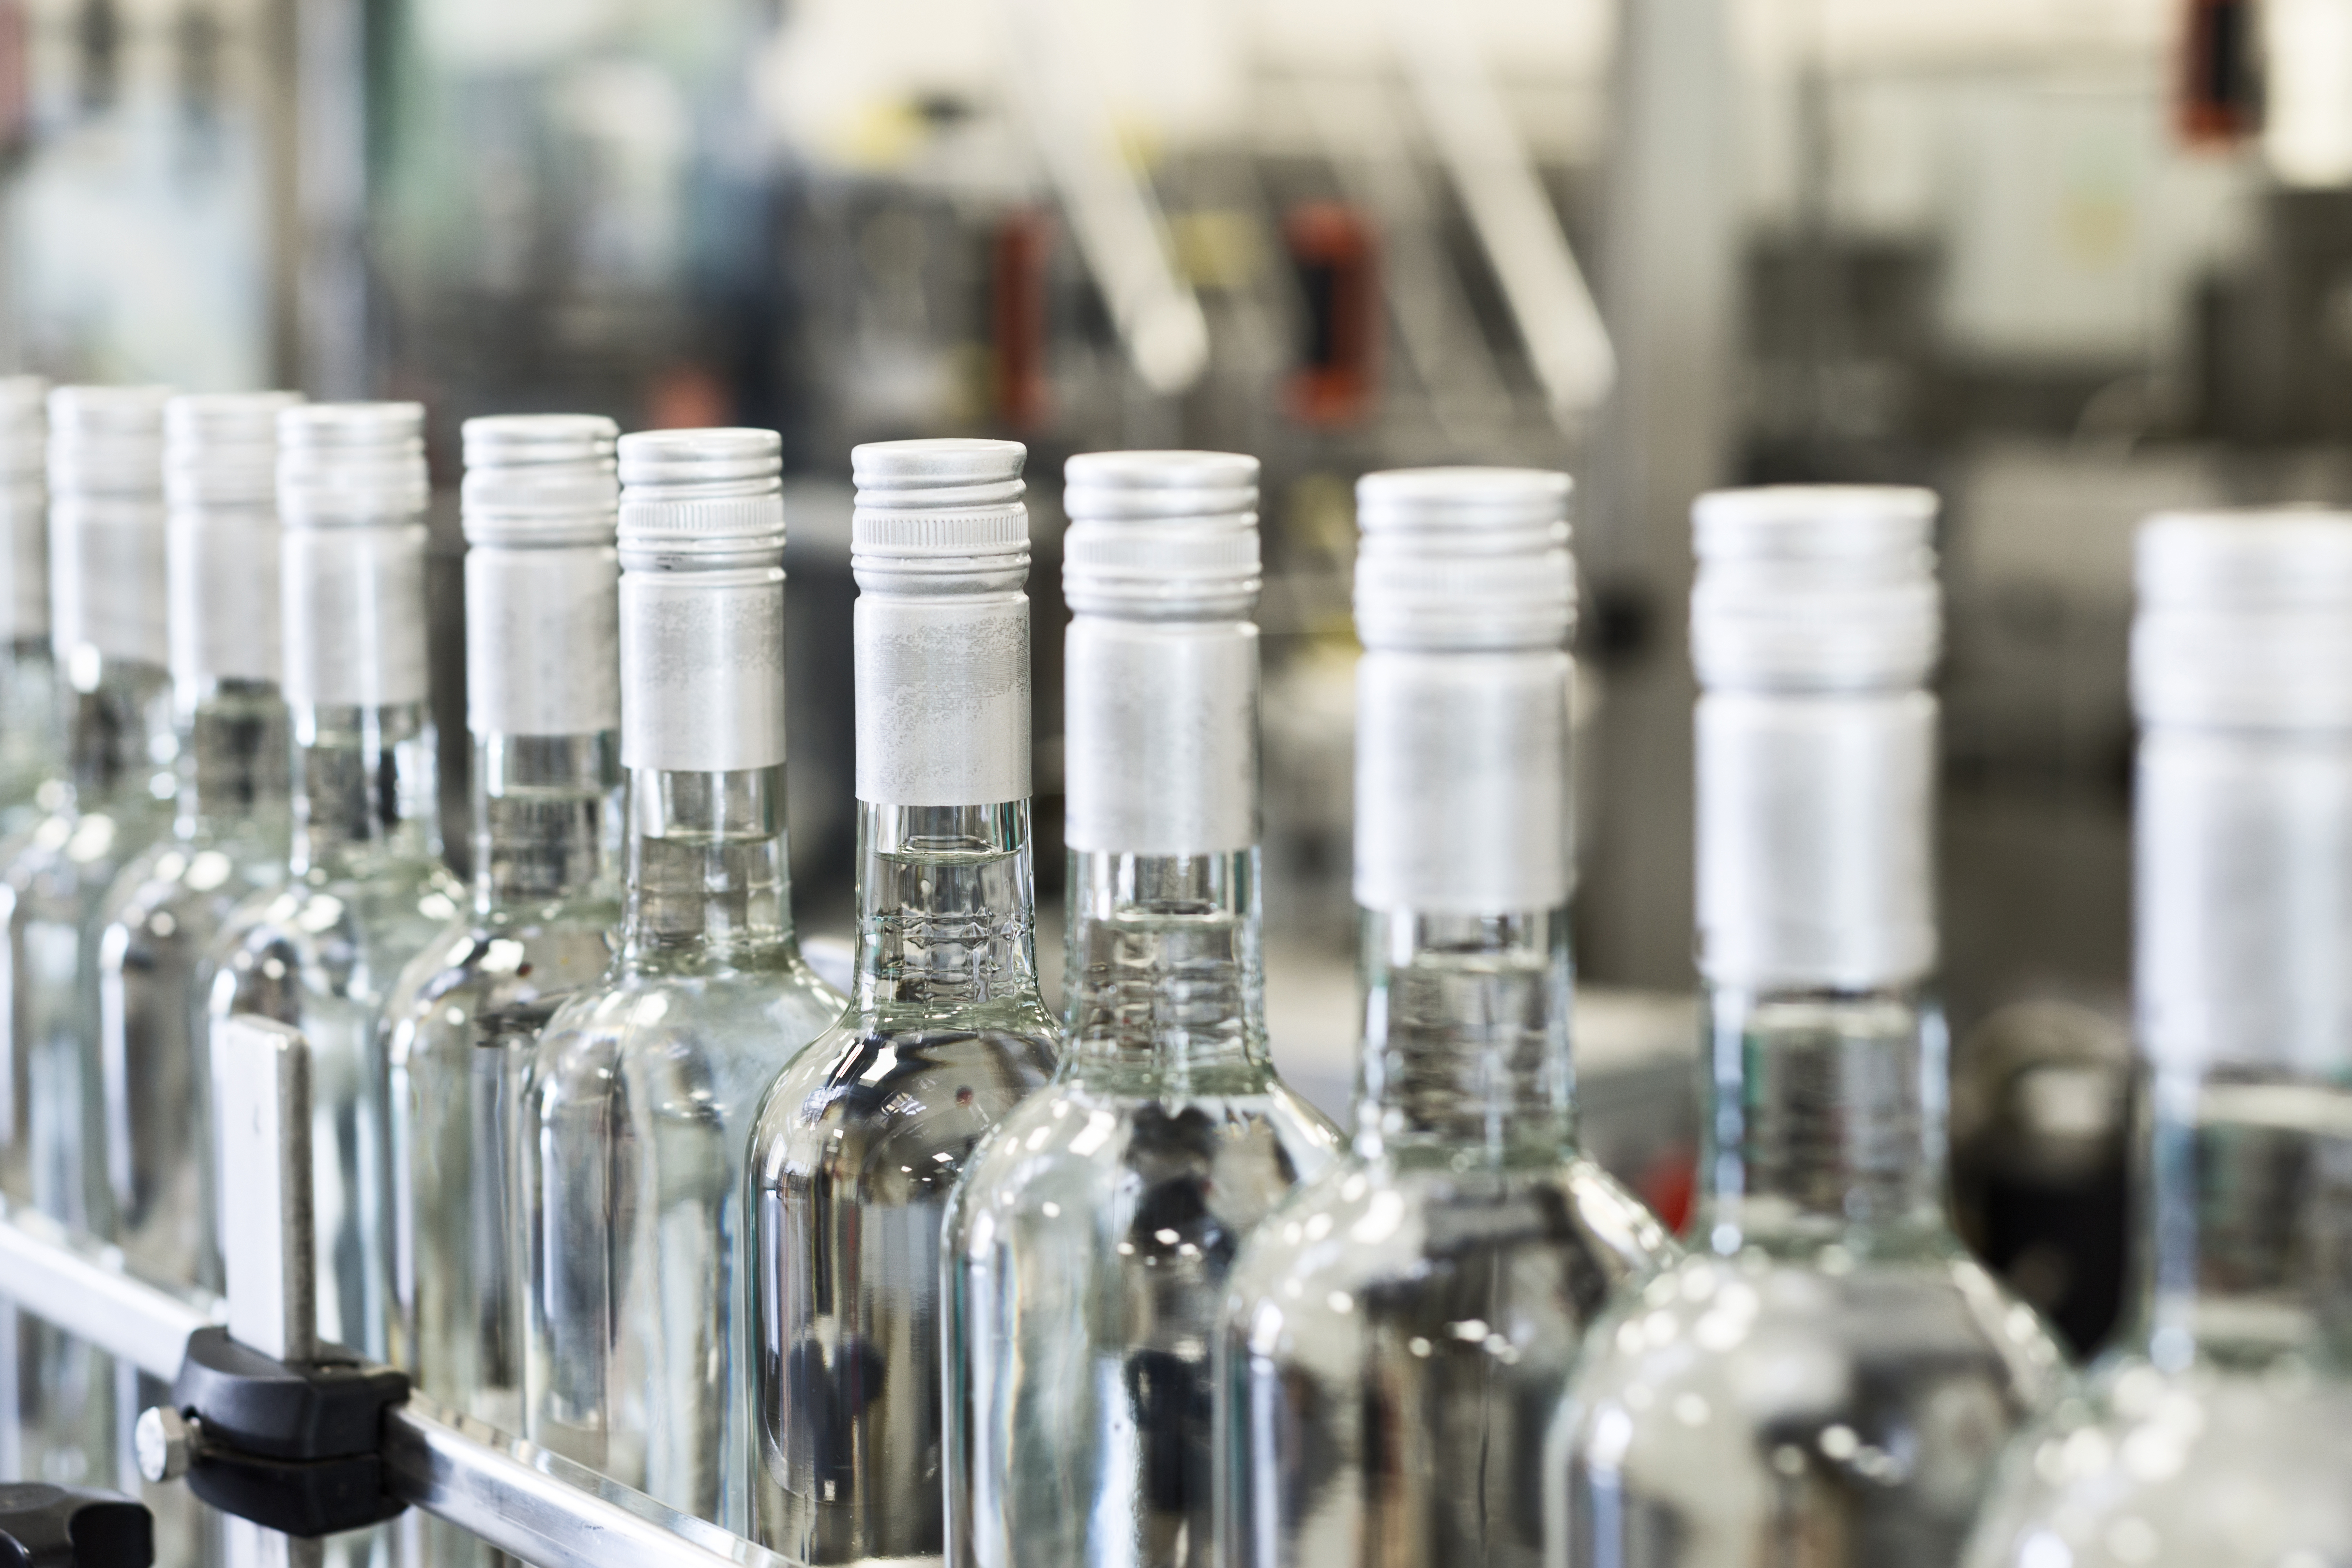 A,Long,Row,Of,Glass,Bottles,On,The,Conveyor.,Manufacture